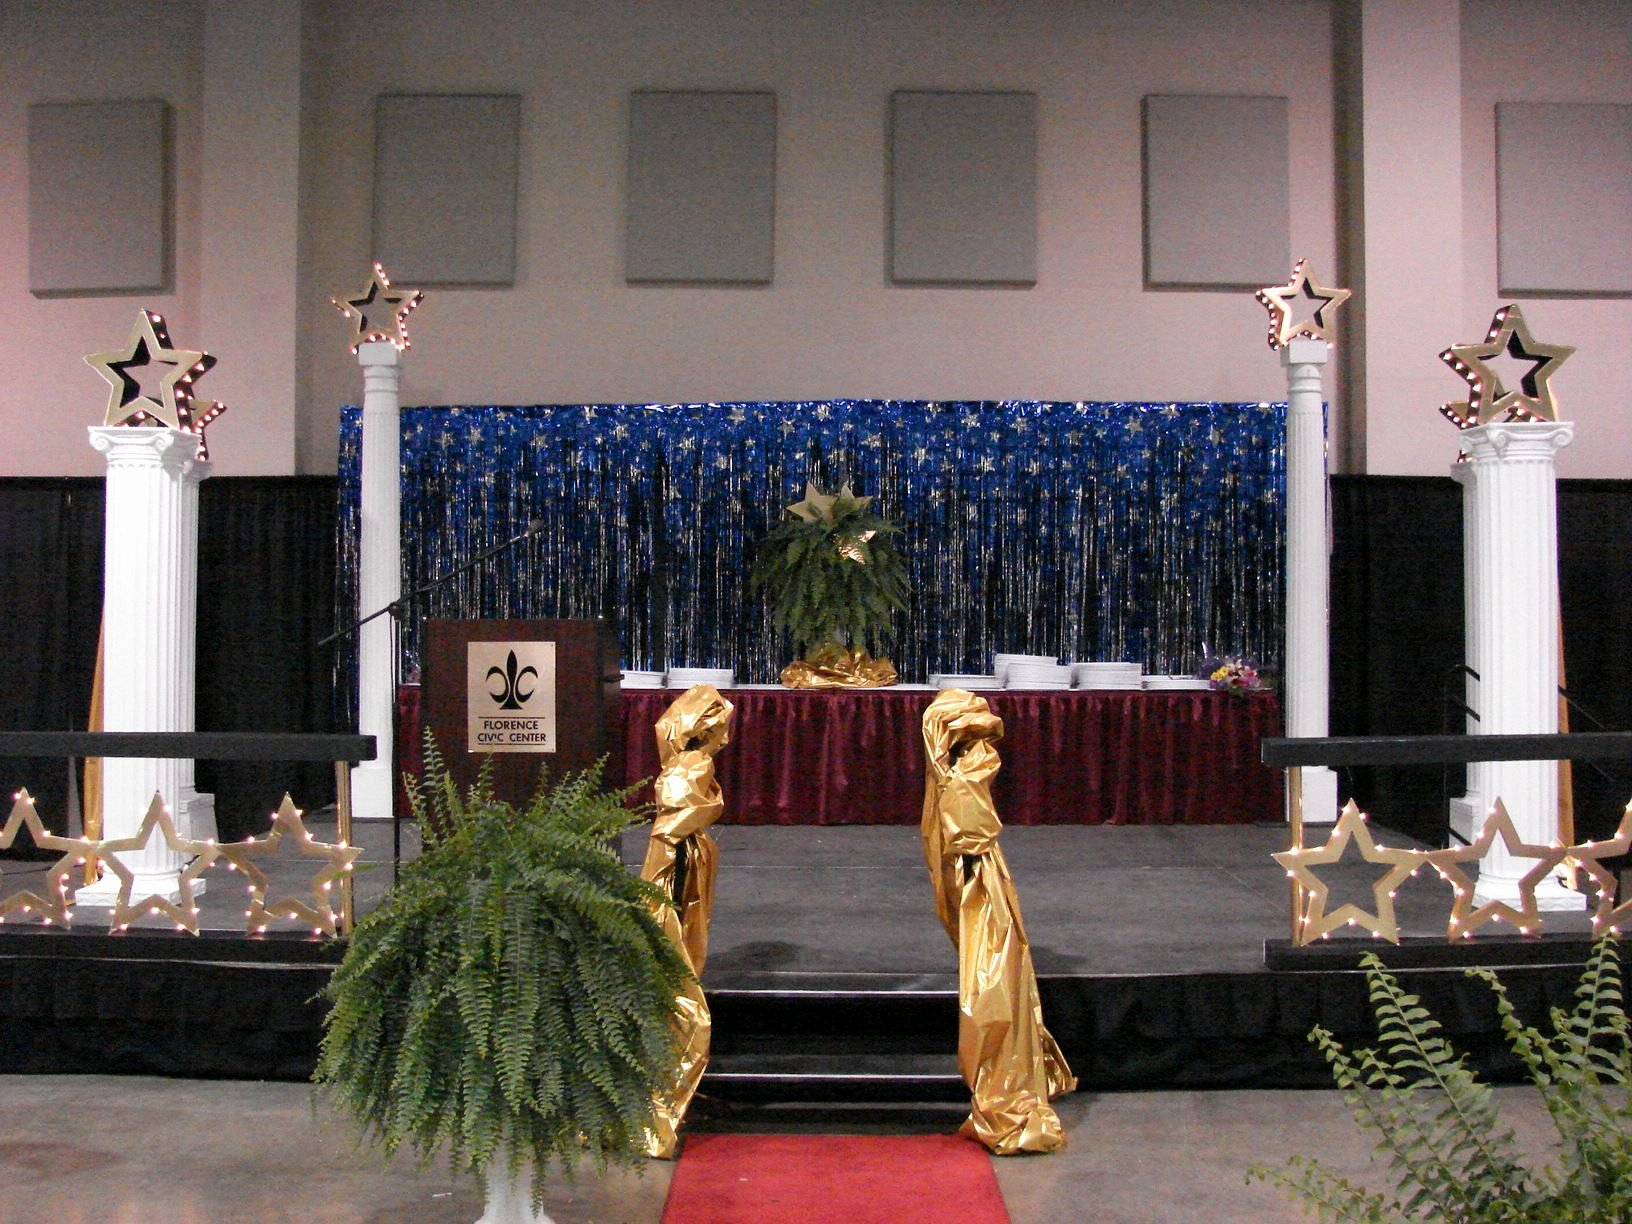 School Awards Ceremony Ideas Unique Stage Decor for Chs Awards Ceremony